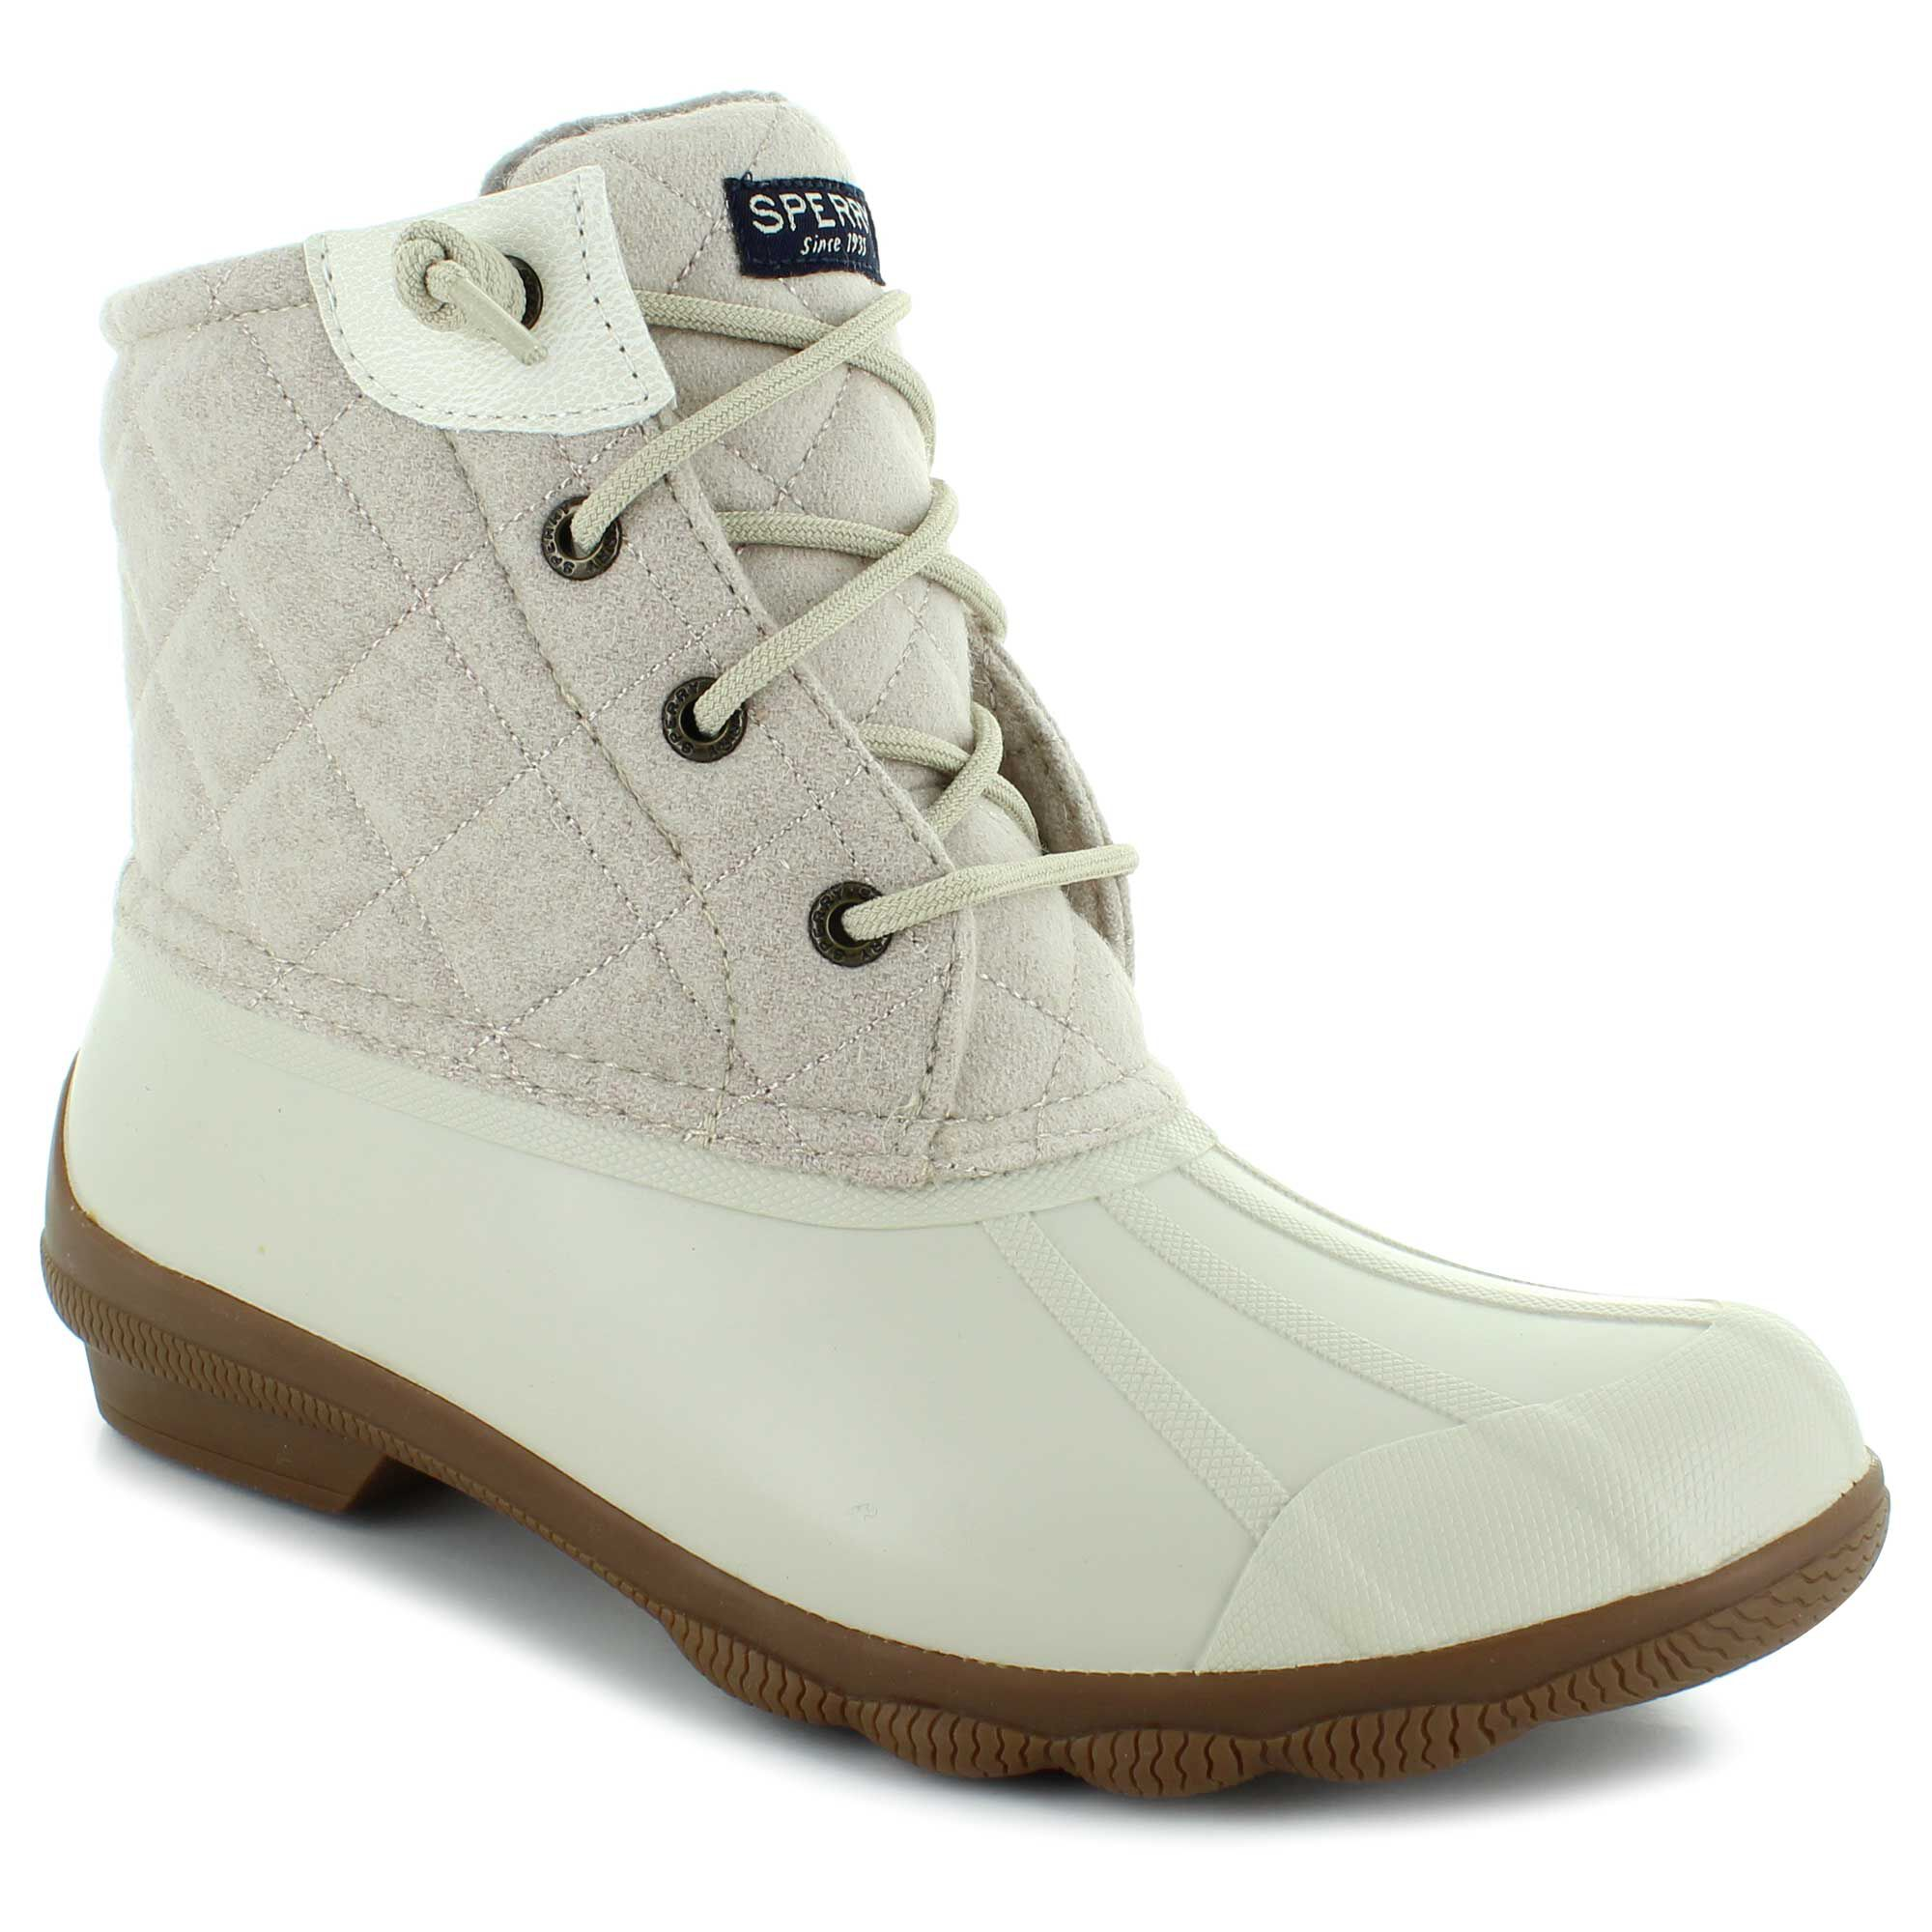 Duck Boots for Women   Shop Now at SHOE